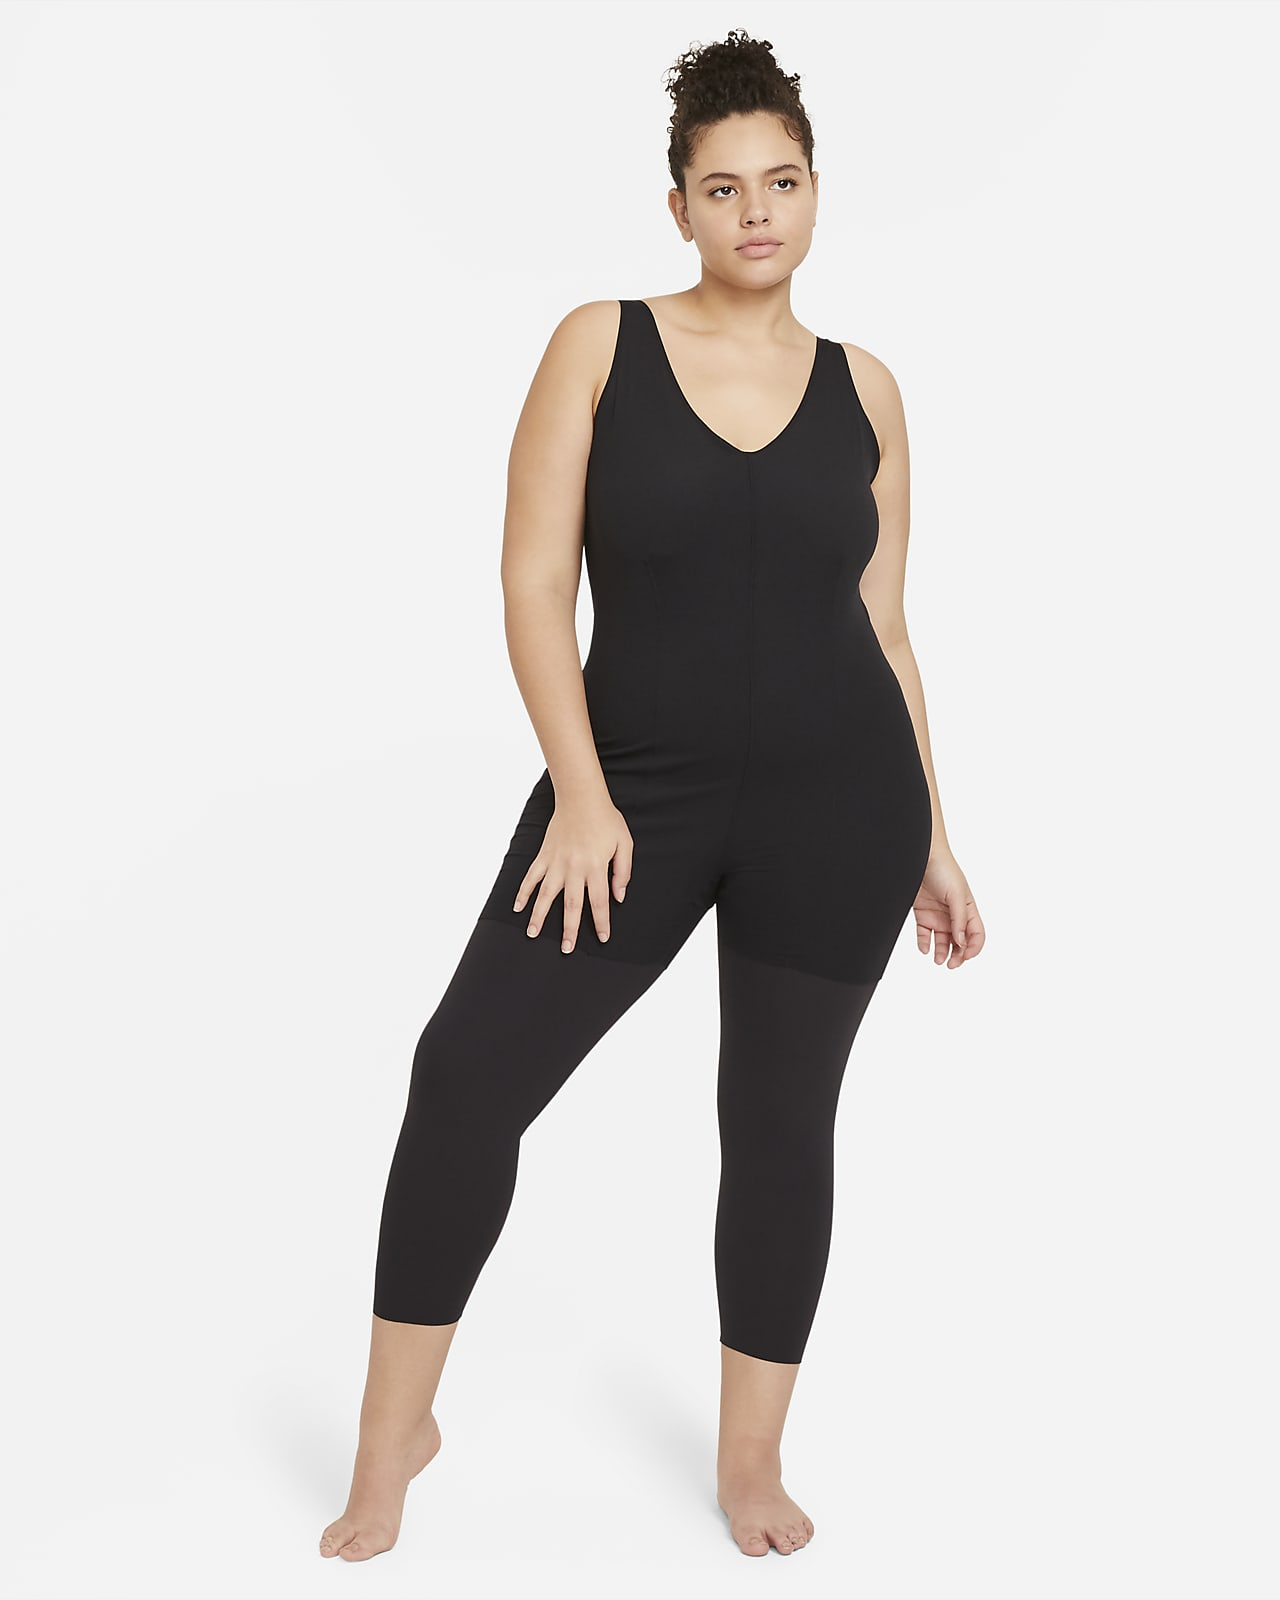 Nike Yoga Luxe Women's 7/8 Layered Jumpsuit (Plus Size)